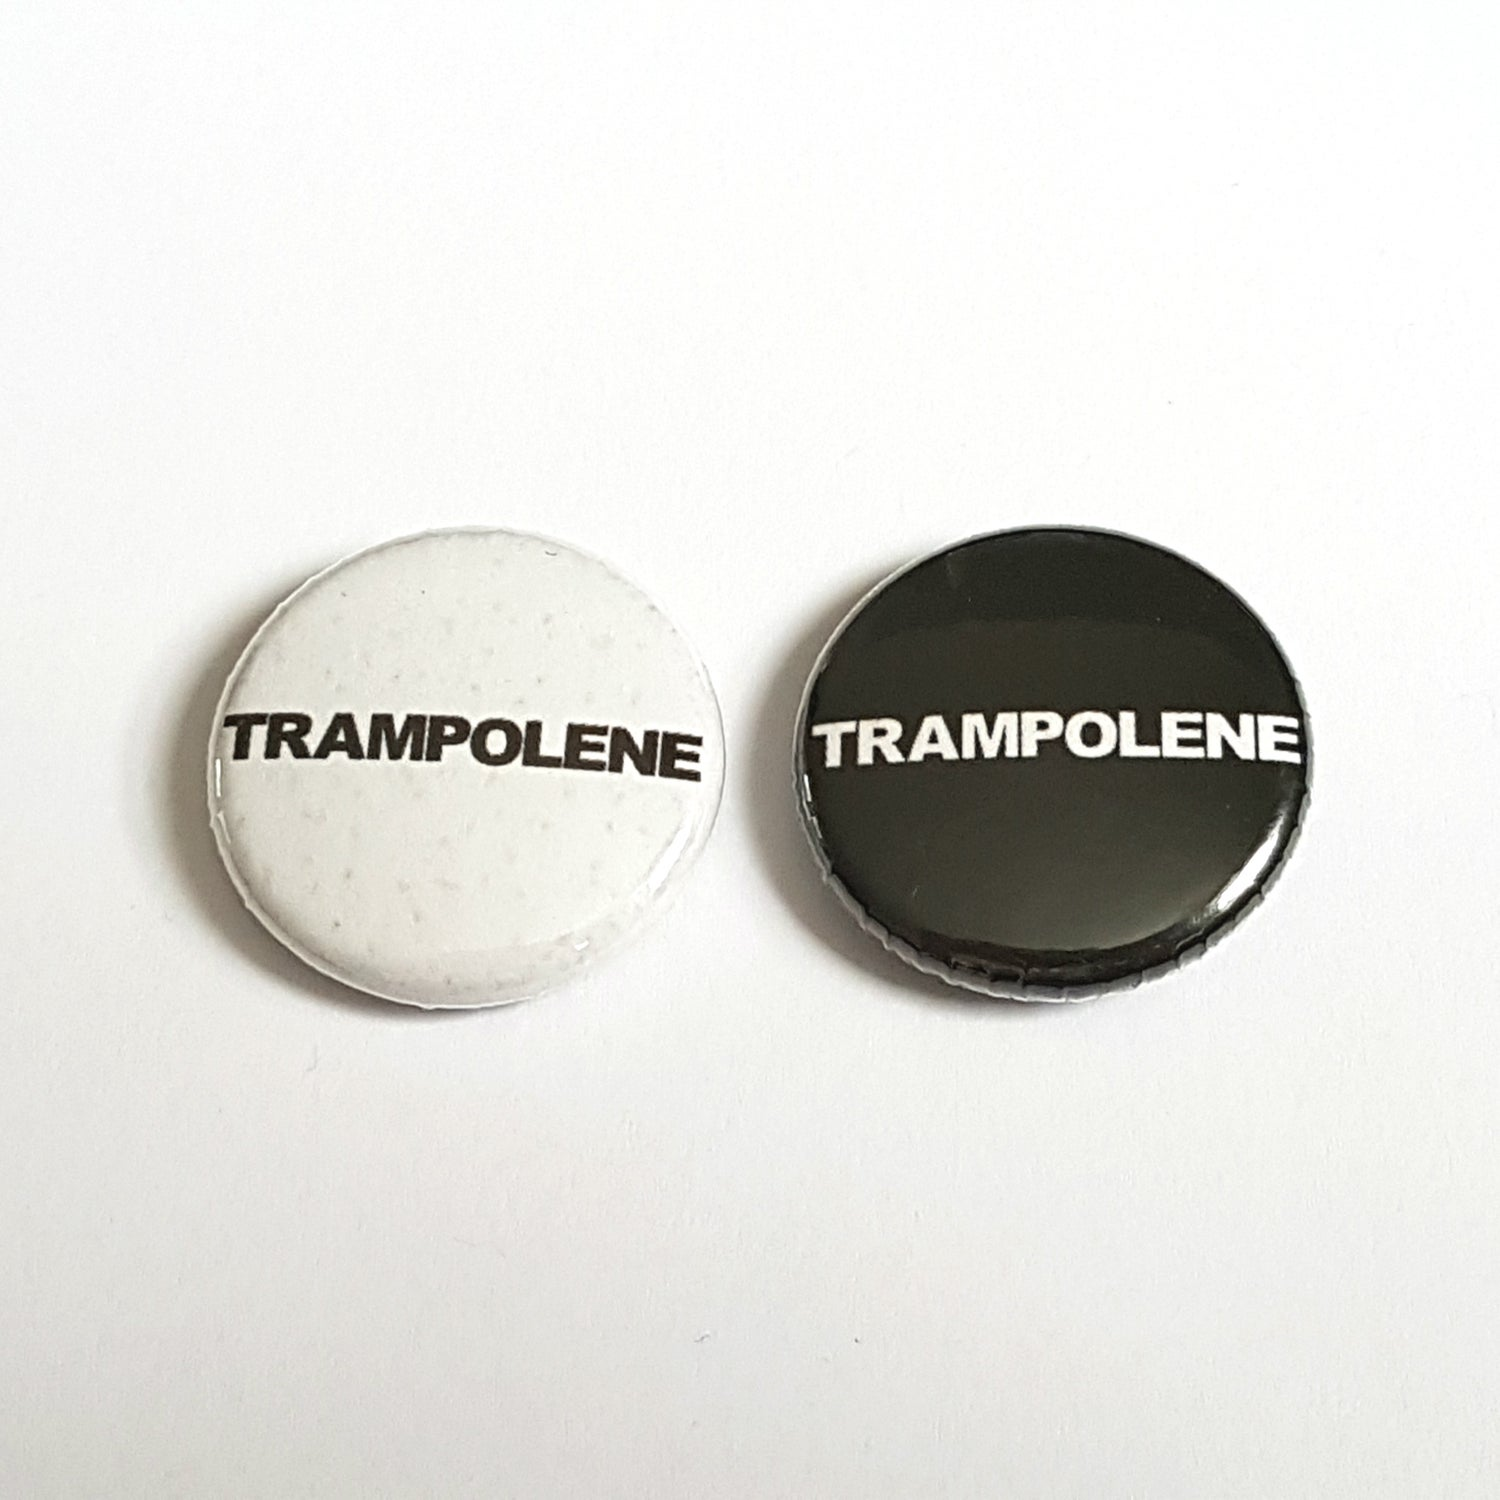 Image of TRAMPOLENE logo badge